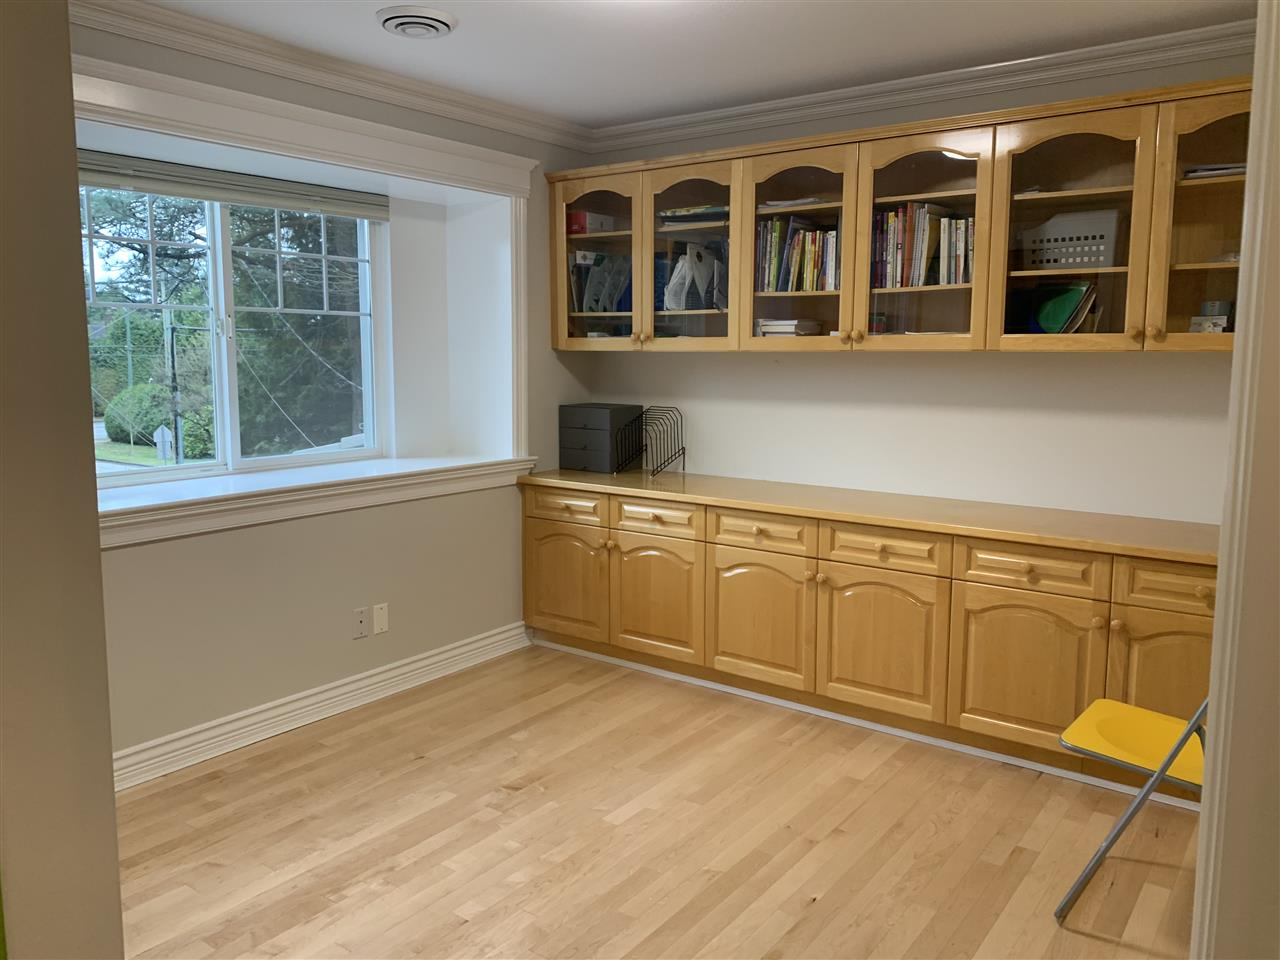 1292 W 40TH AVENUE - Shaughnessy House/Single Family for sale, 7 Bedrooms (R2527564) - #11